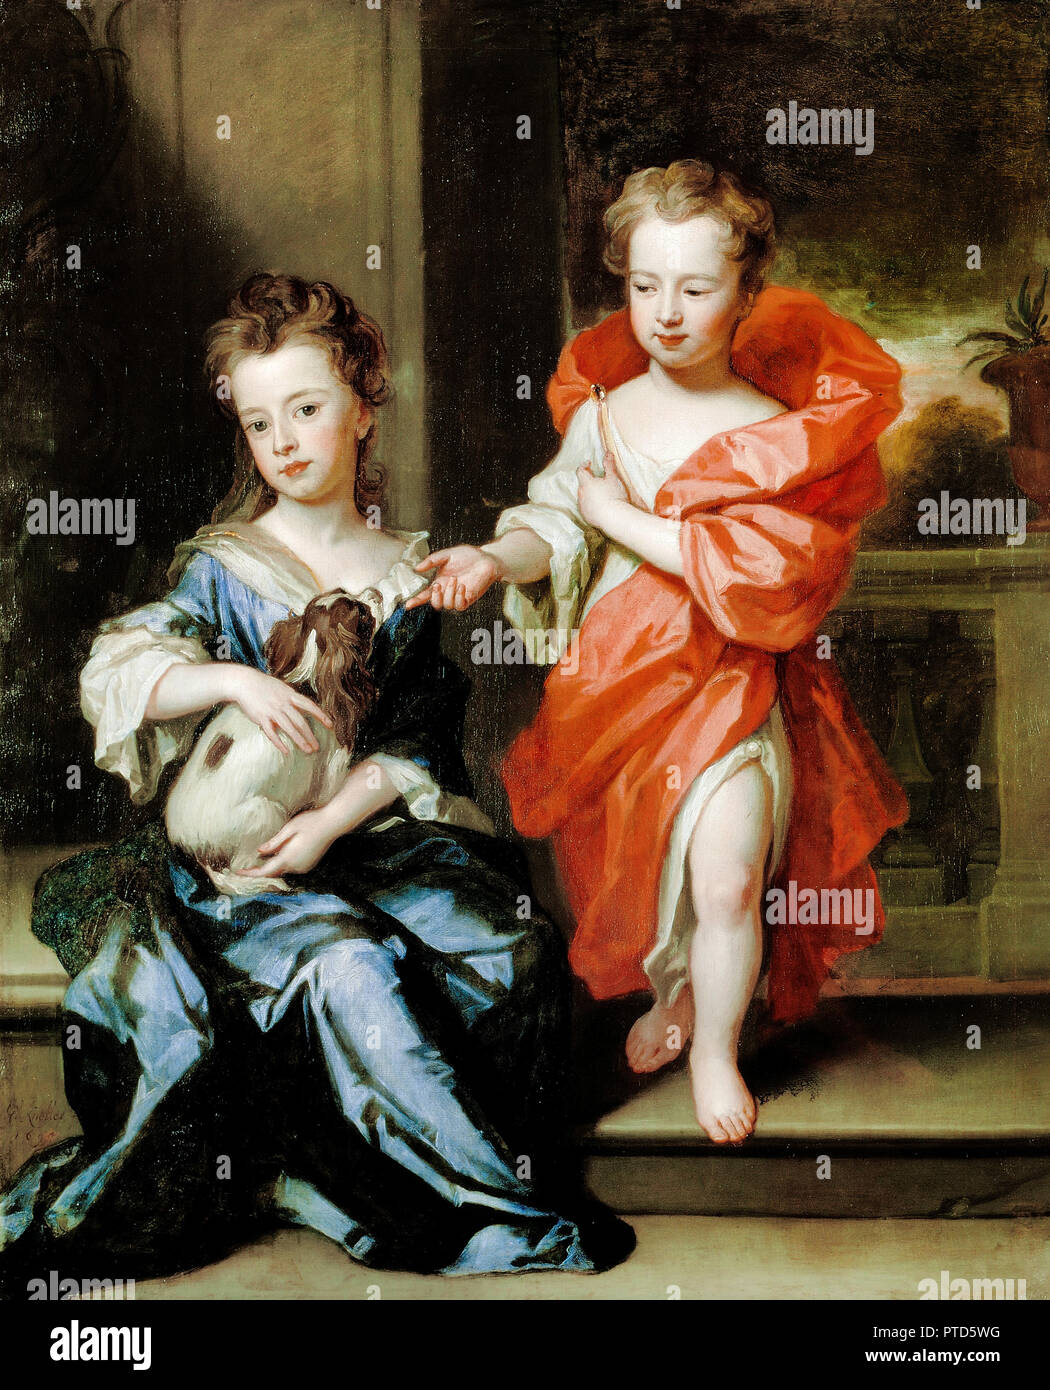 Godfrey Kneller, The Howard Children 1695 Oil on canvas, Dulwich Picture Gallery, London, England. - Stock Image